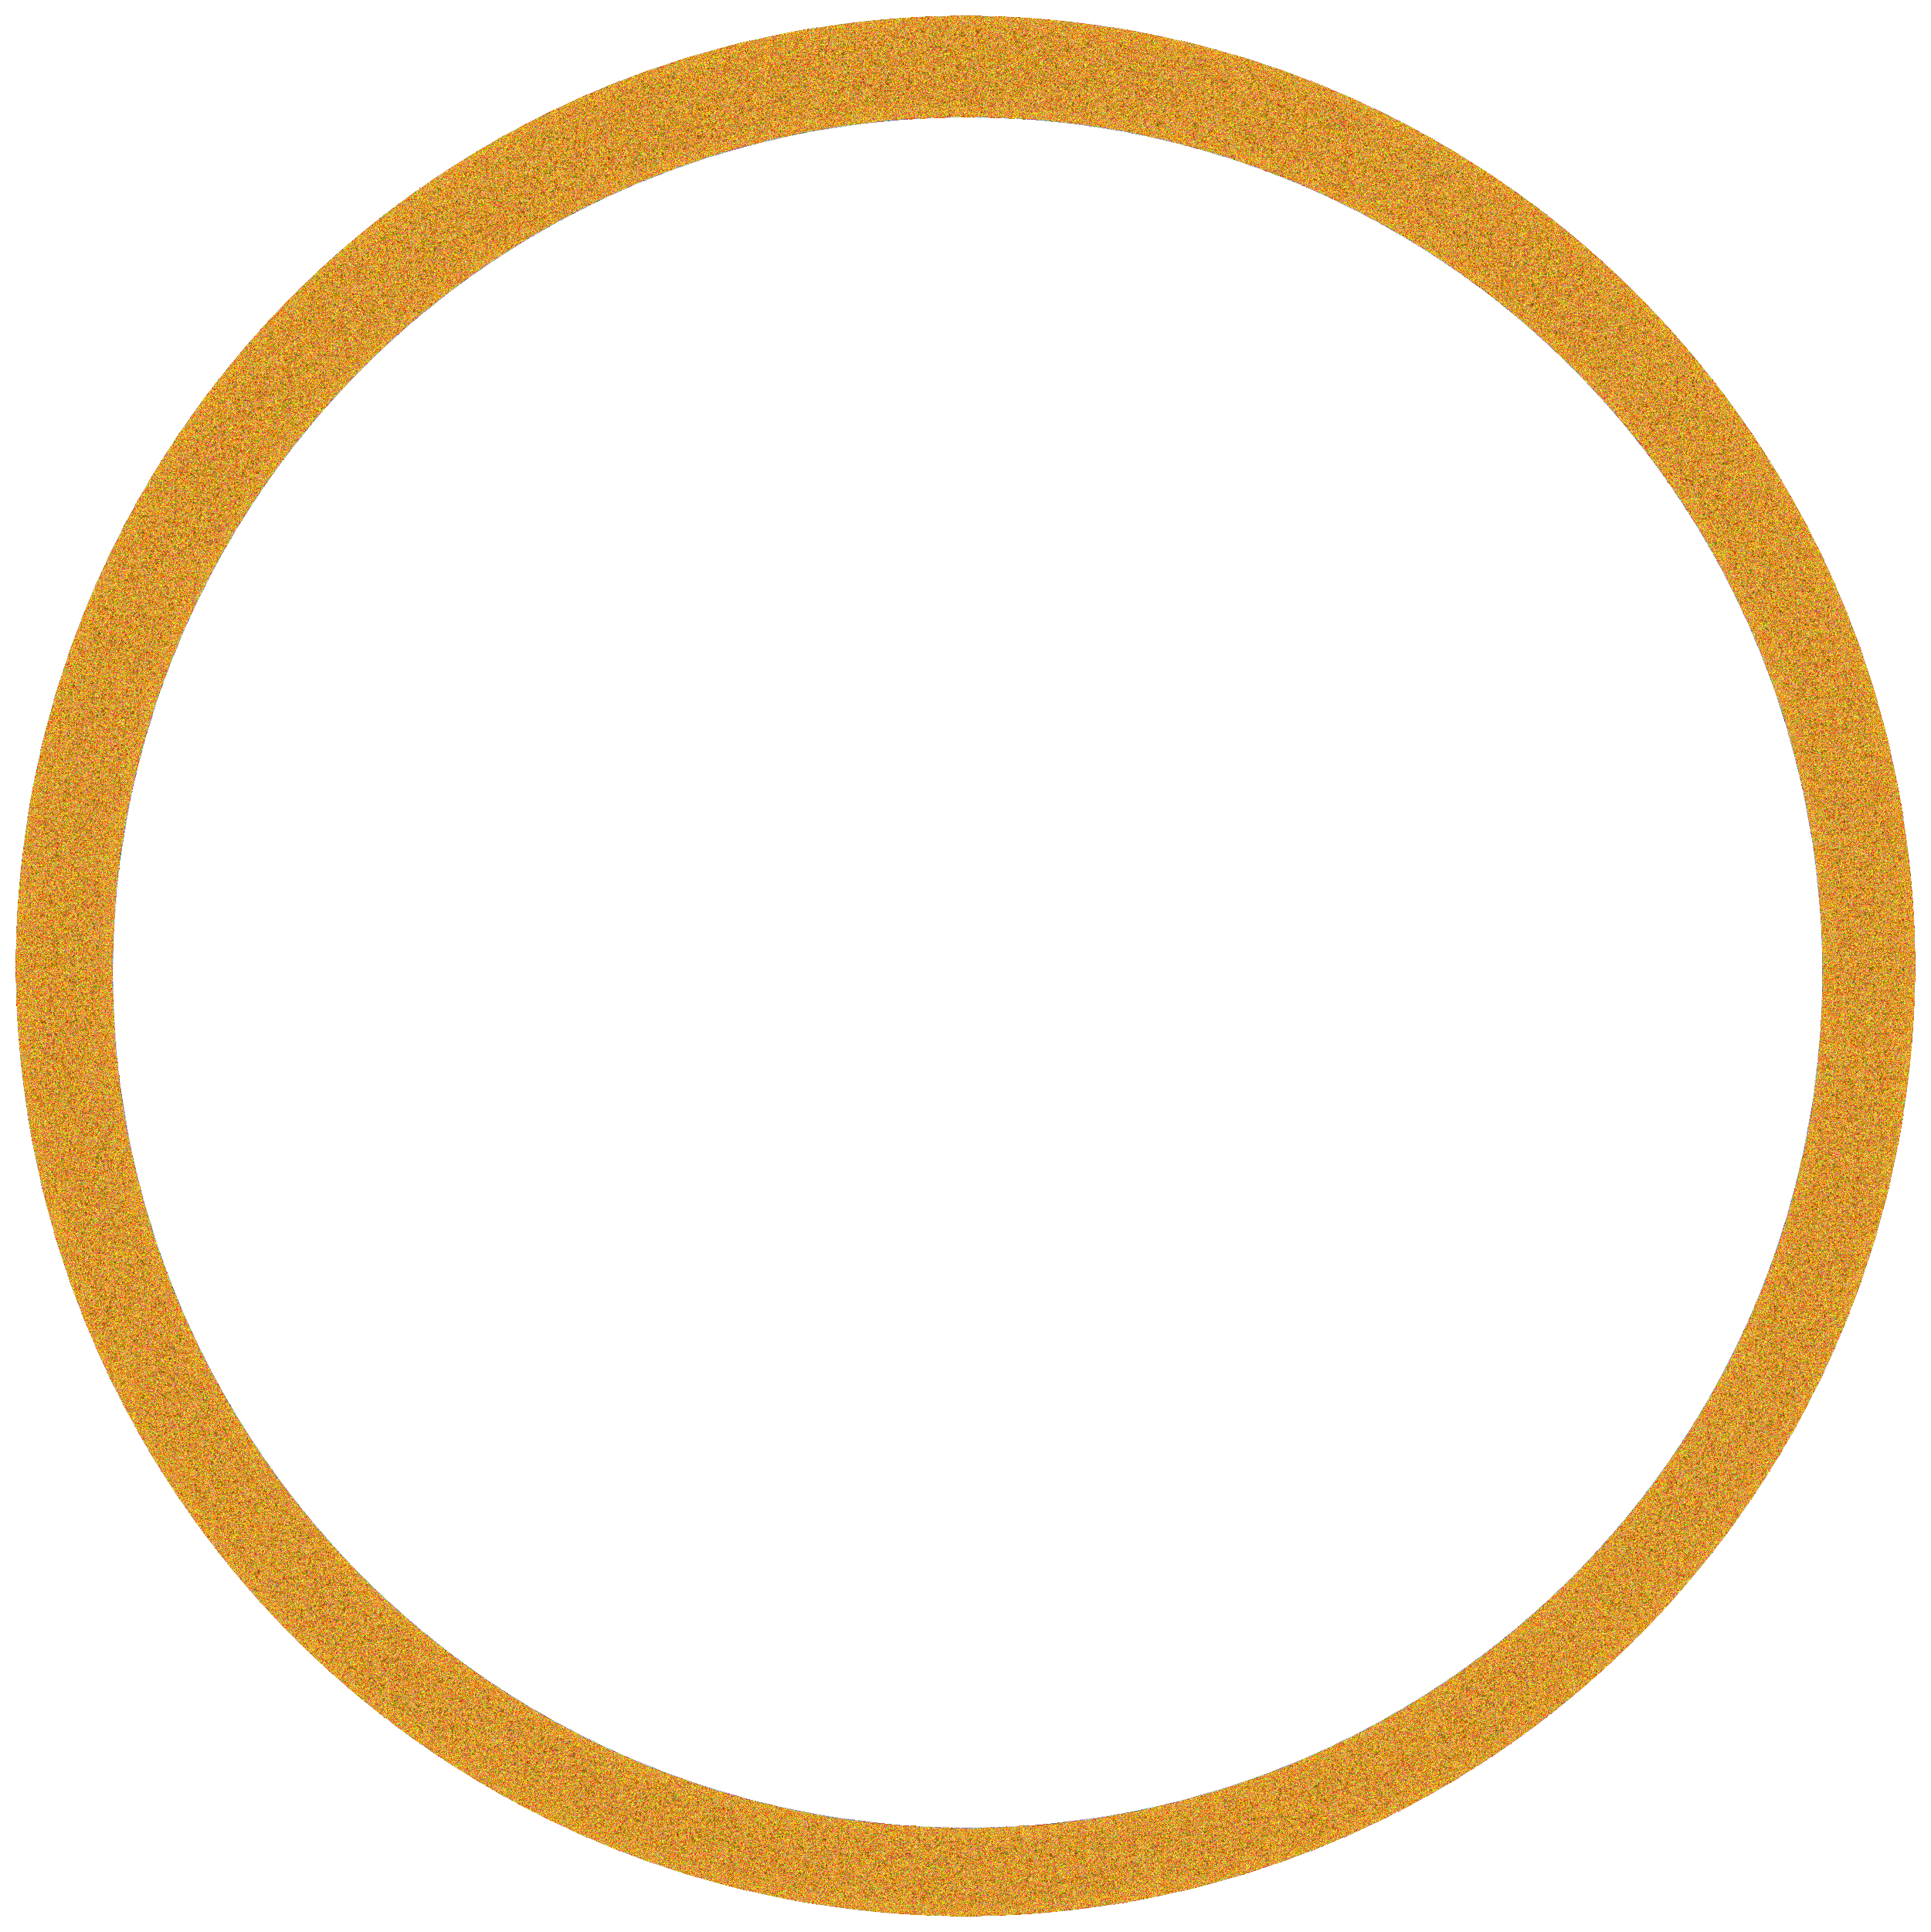 Round circle png. Area point angle frame